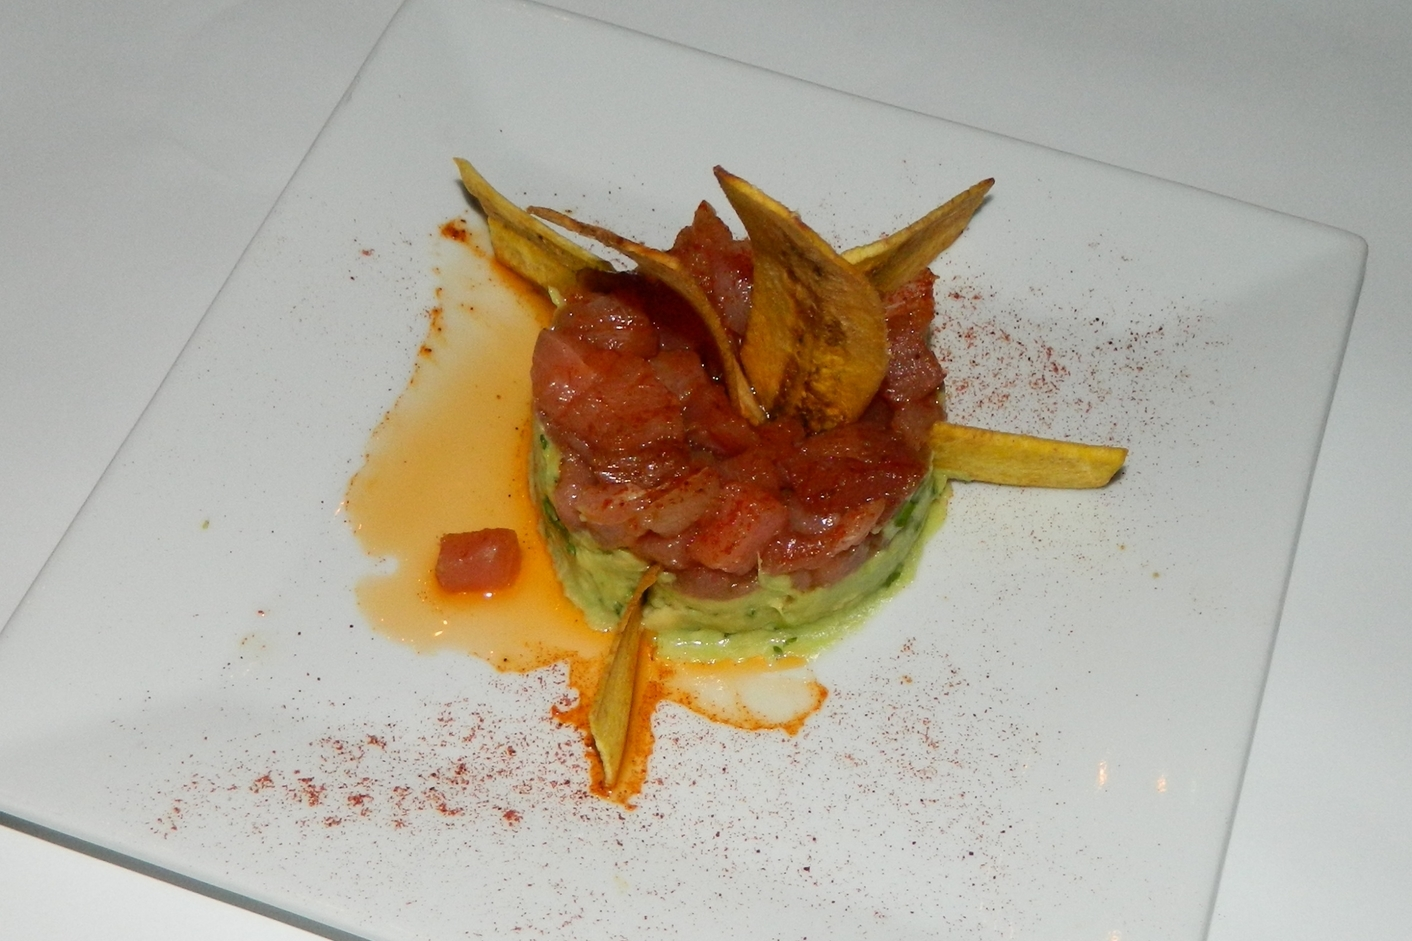 Pictured: Ahi tuna tartare.